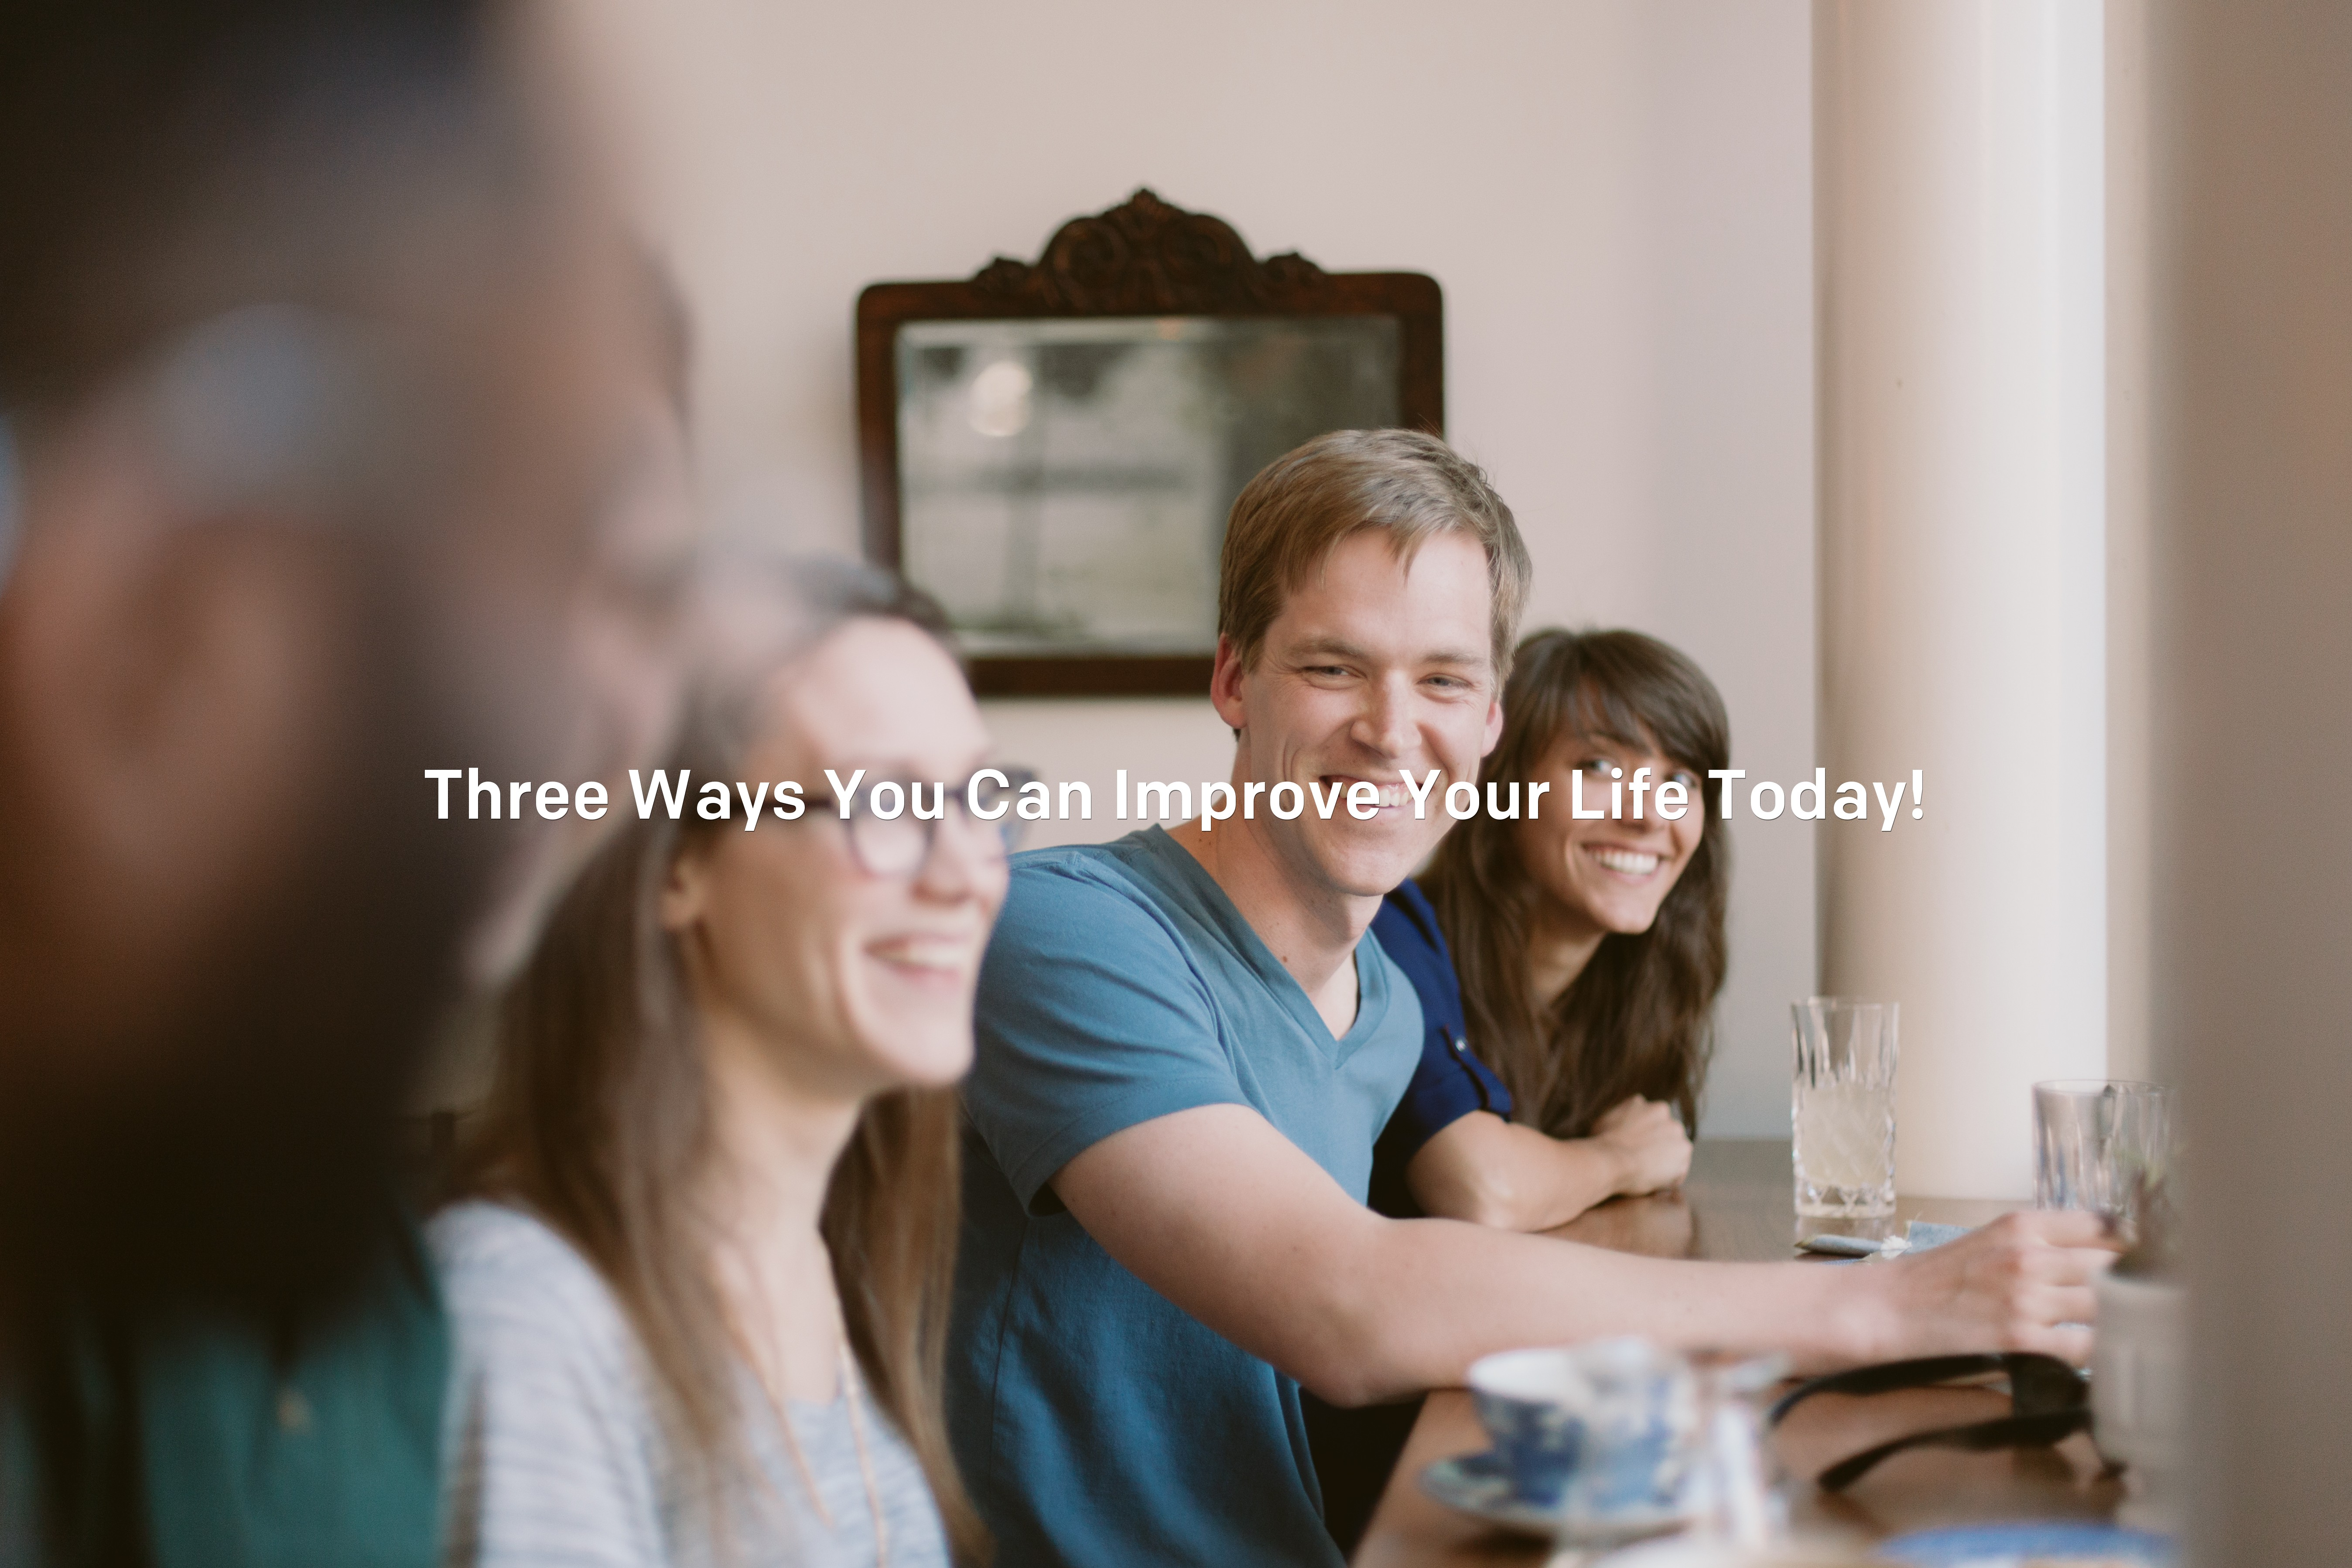 3 Ways To Improve Your Life Now